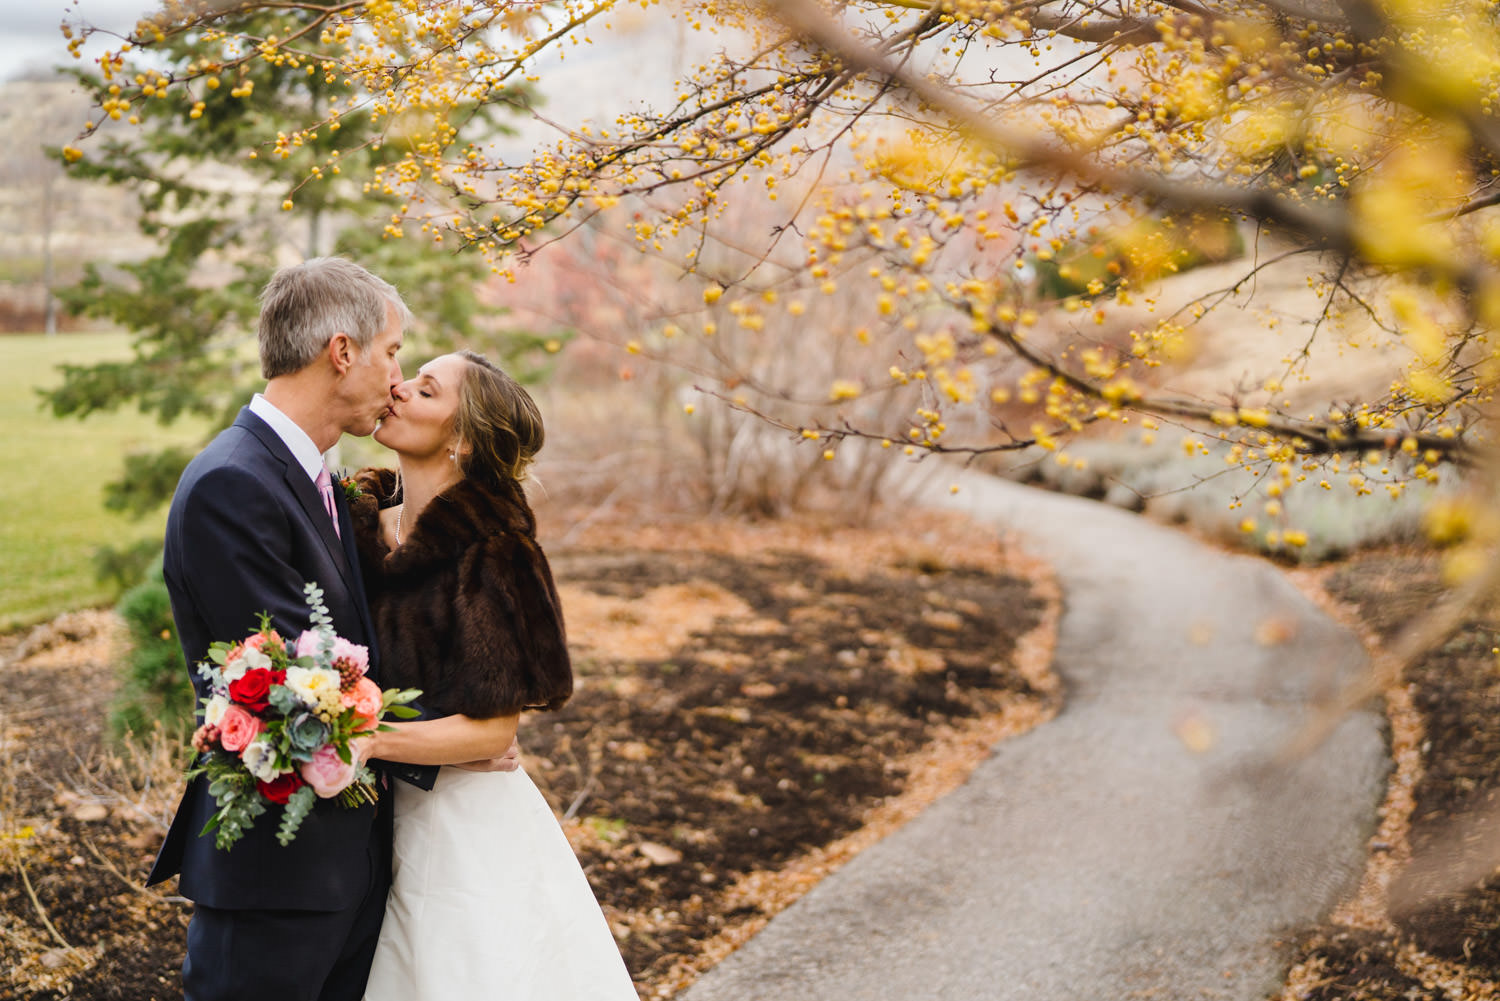 Red Butte Garden wedding bride and groom kissing on colorful path photo